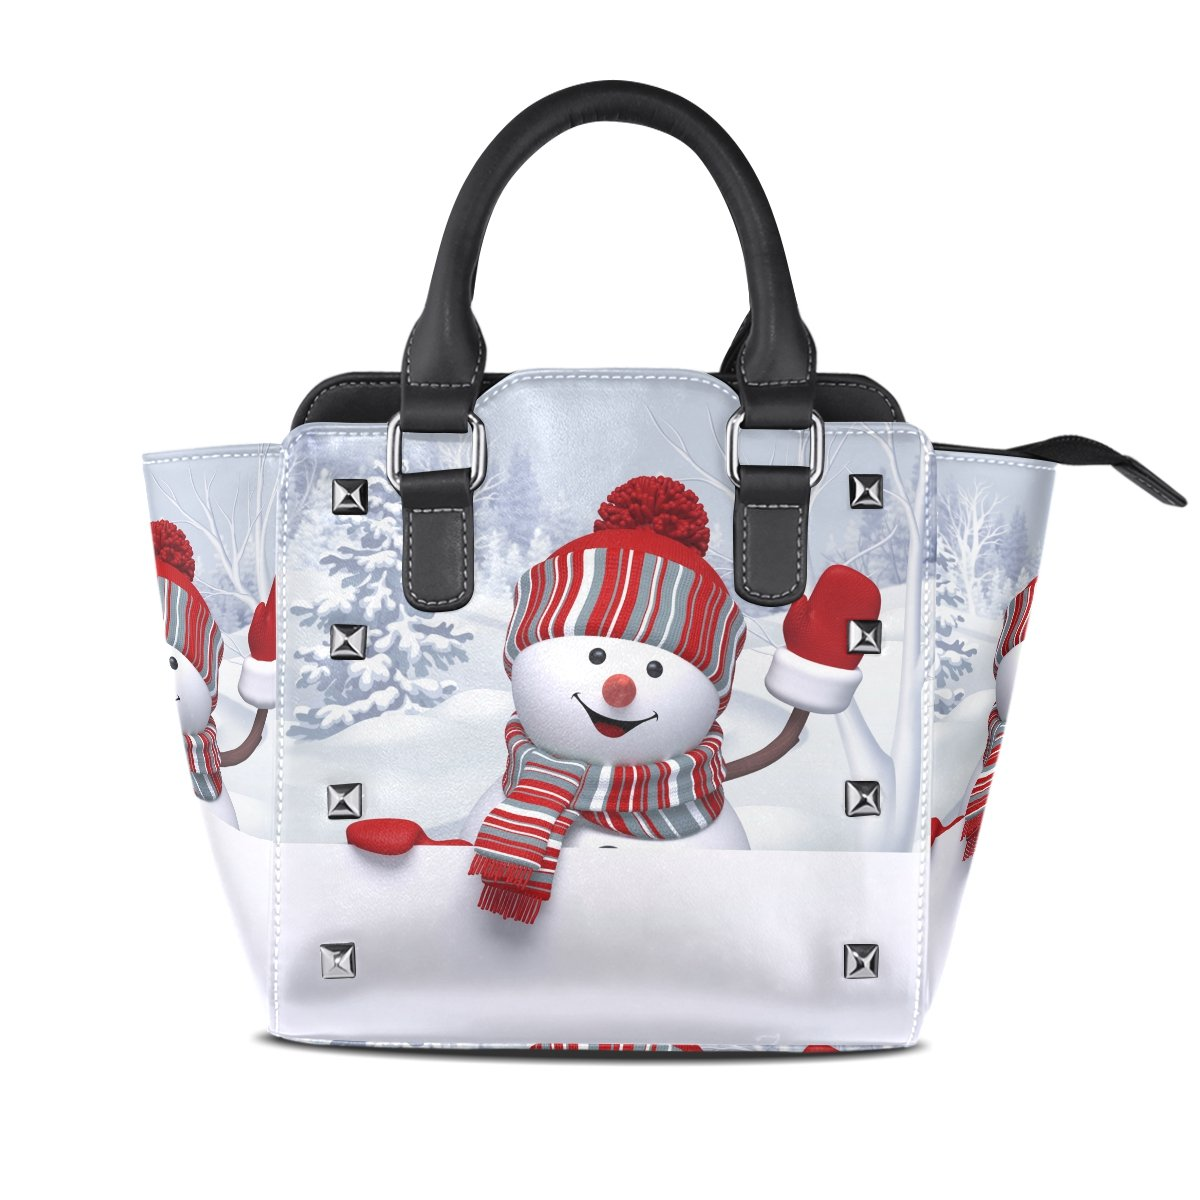 ALAZA Christmas Xmas Snowman Travel Hobo Tote Bag Top-Handle Handbags